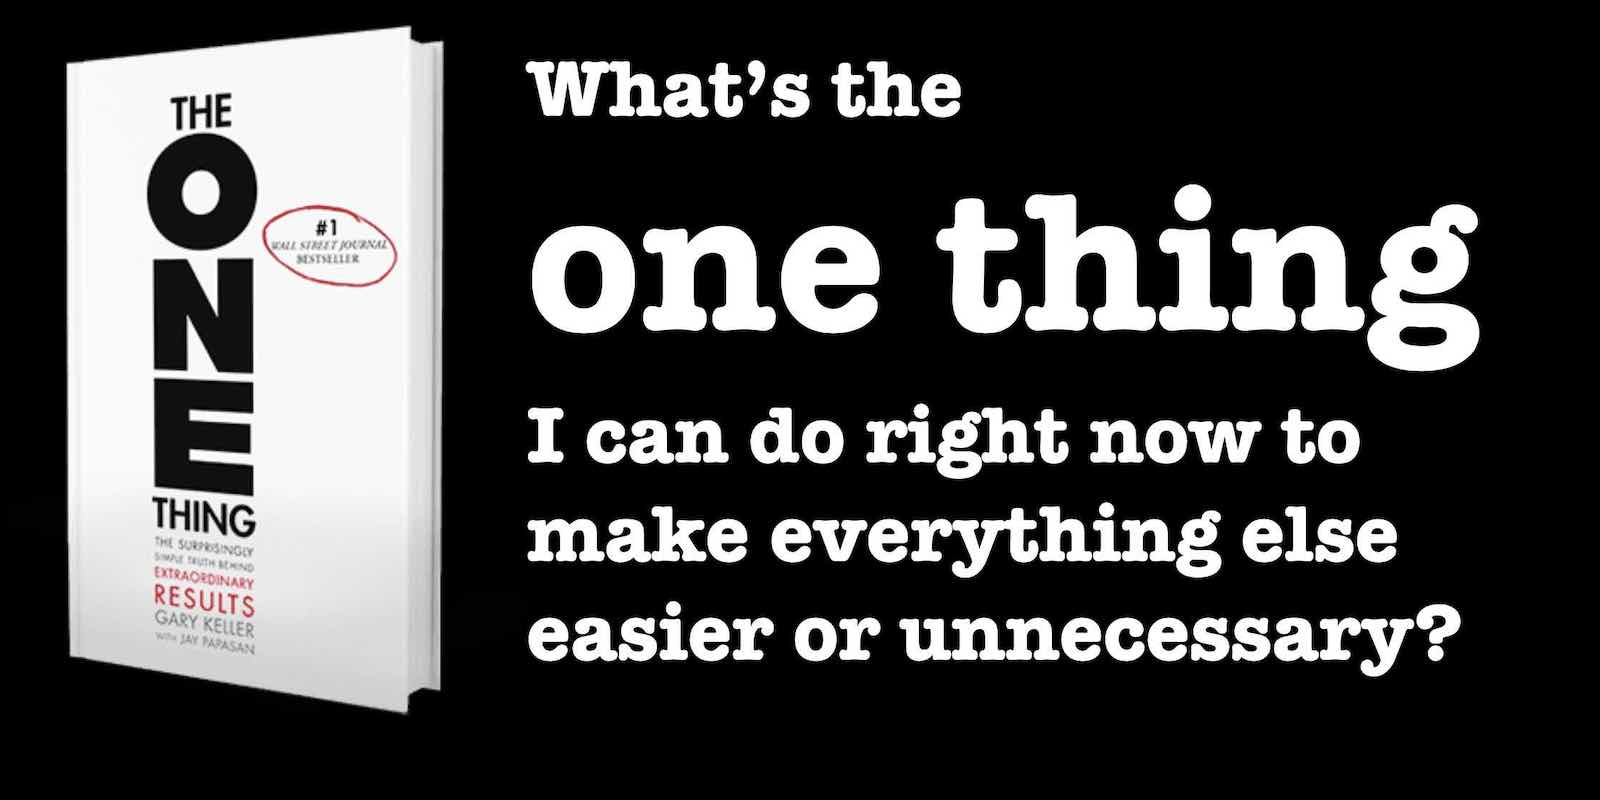 Focusing Question: What's the one thing I can do right now to make everything else easier or unnecessary? From The One Thing by Gary Keller + Jay Papasan